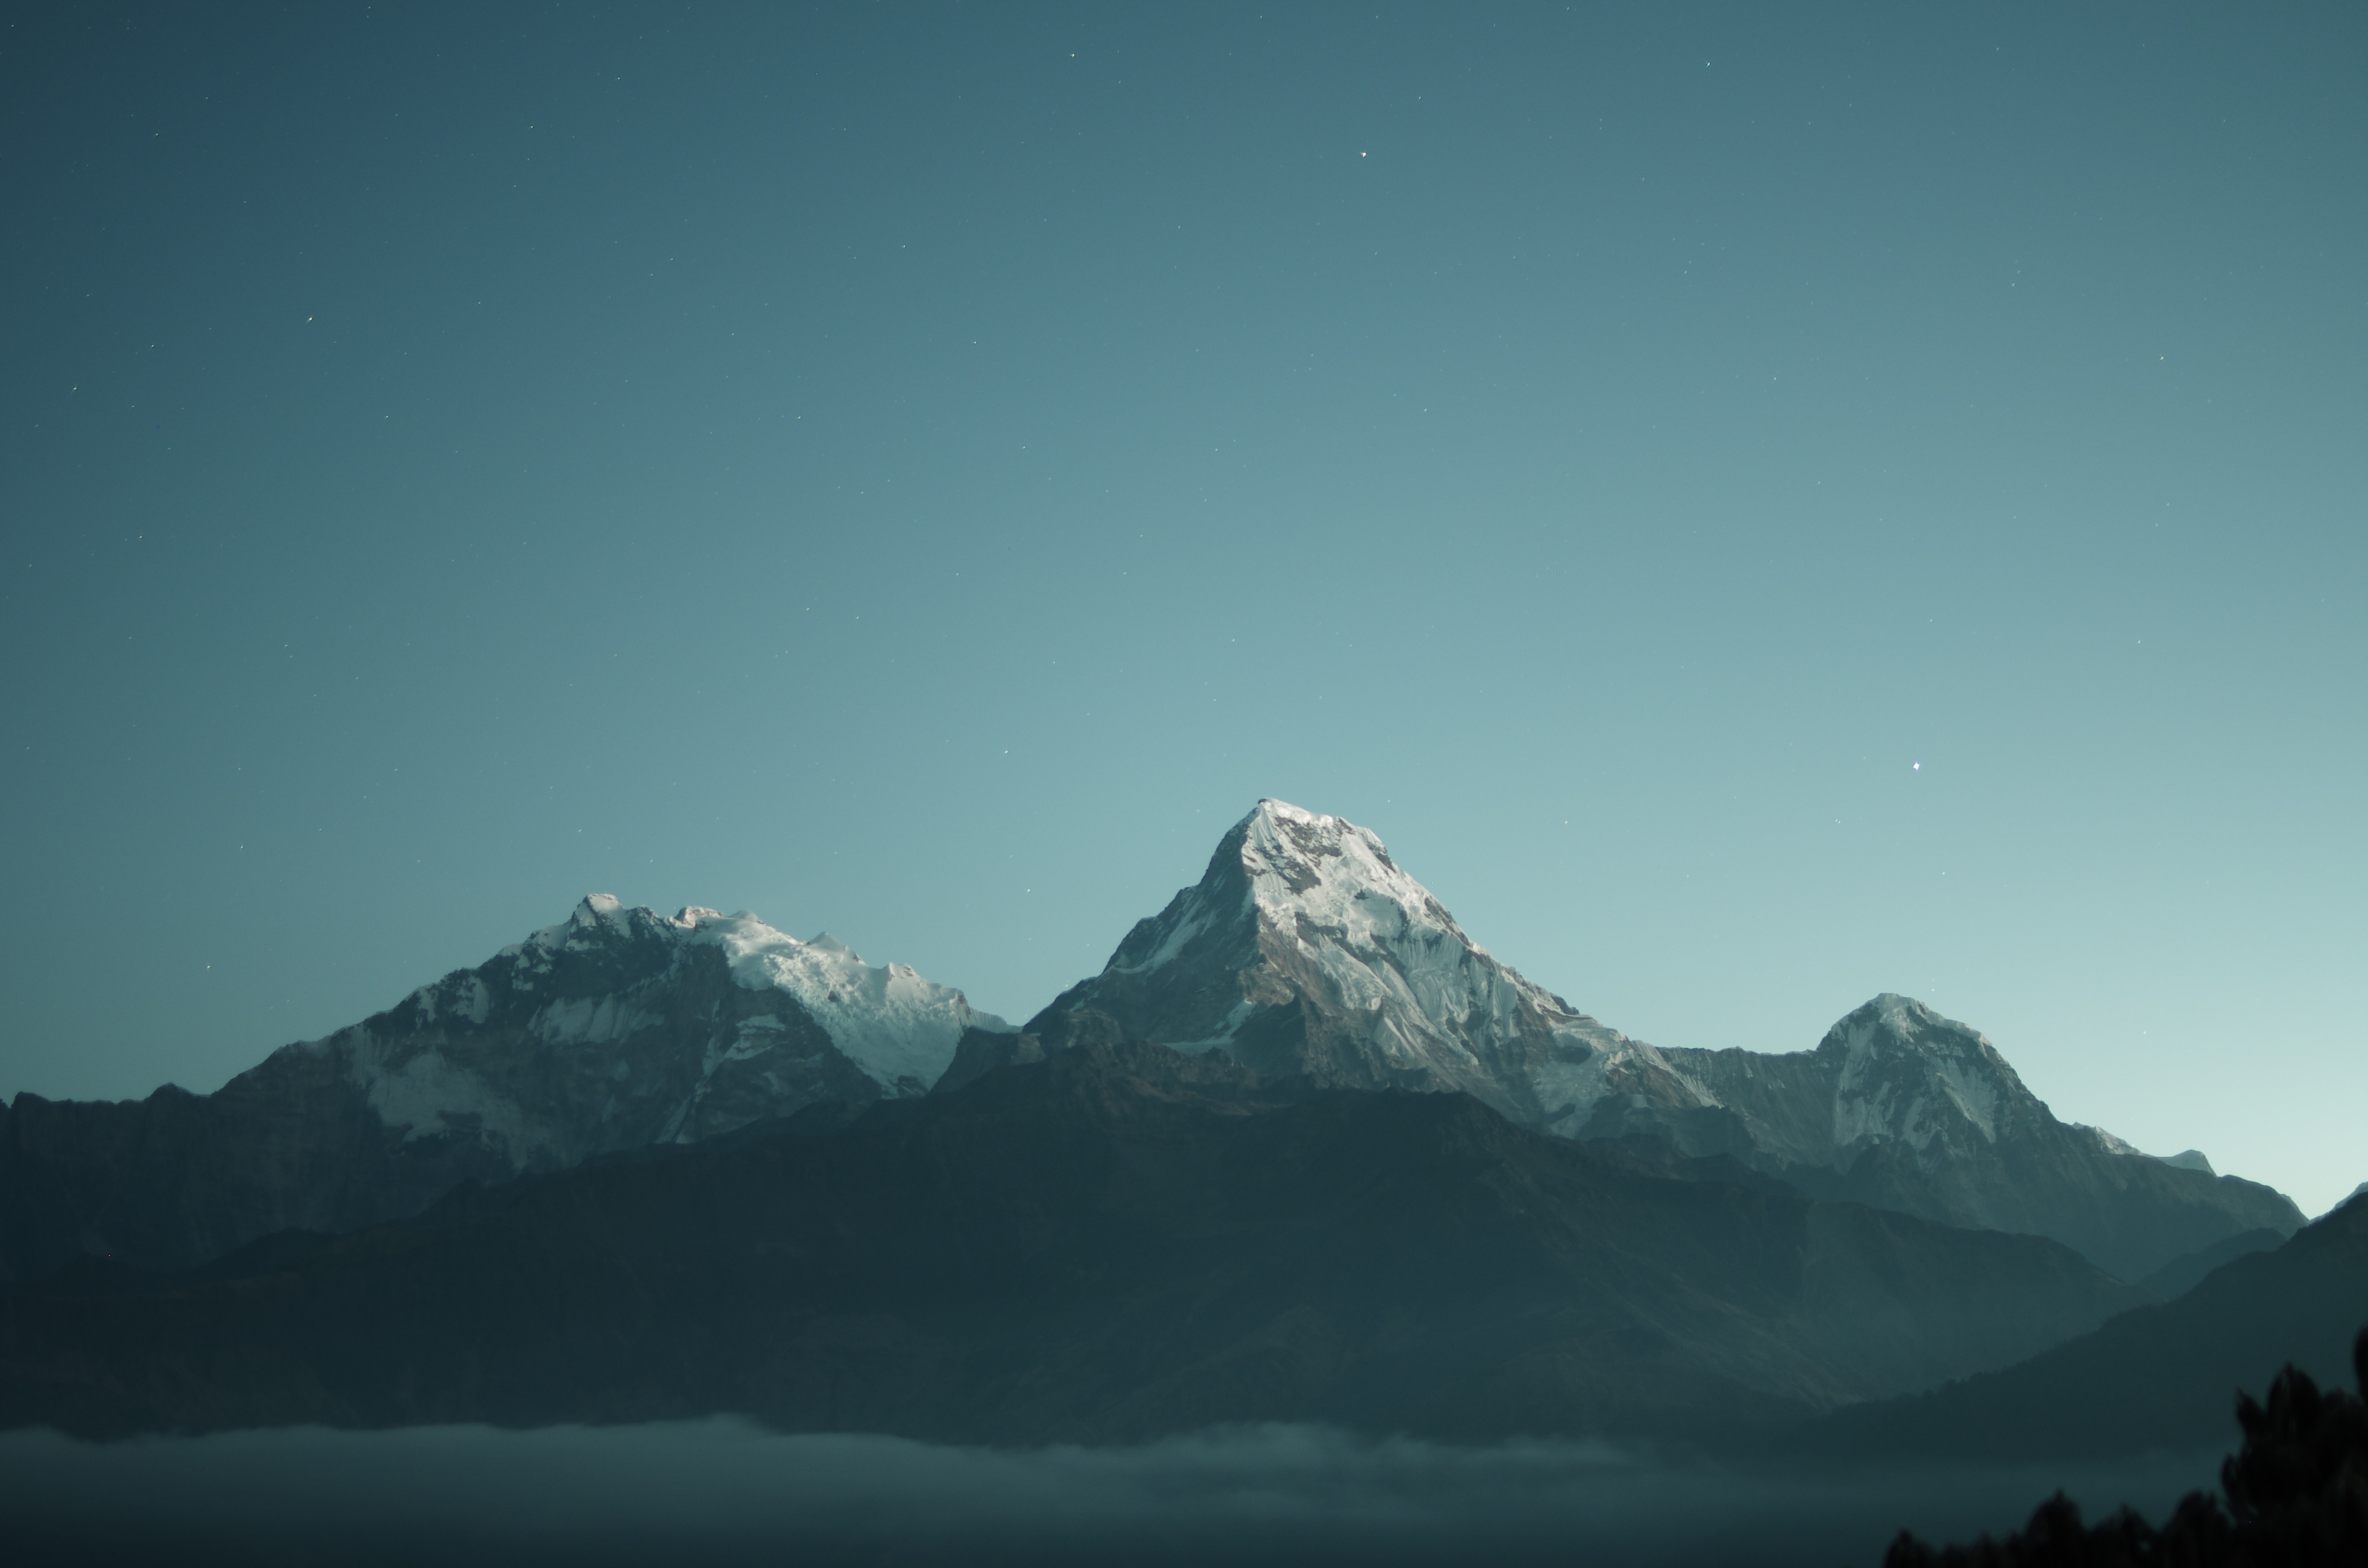 Soaring snow-capped mountains under the evening sky